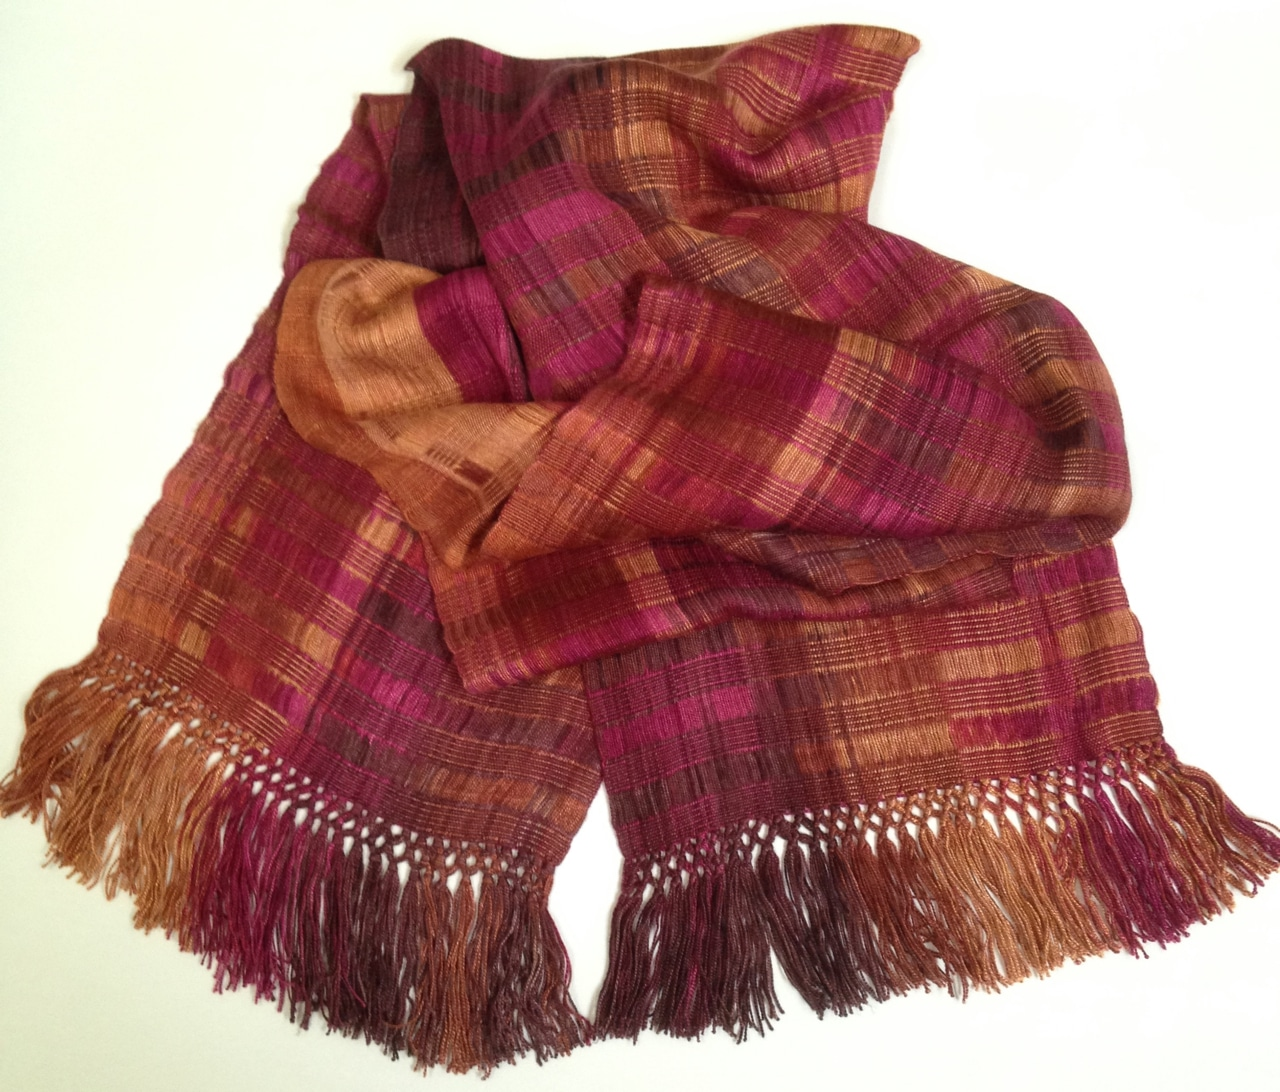 Raspberry, Apricot - Lightweight Bamboo Open-Weave Handwoven Scarf 8 x 68